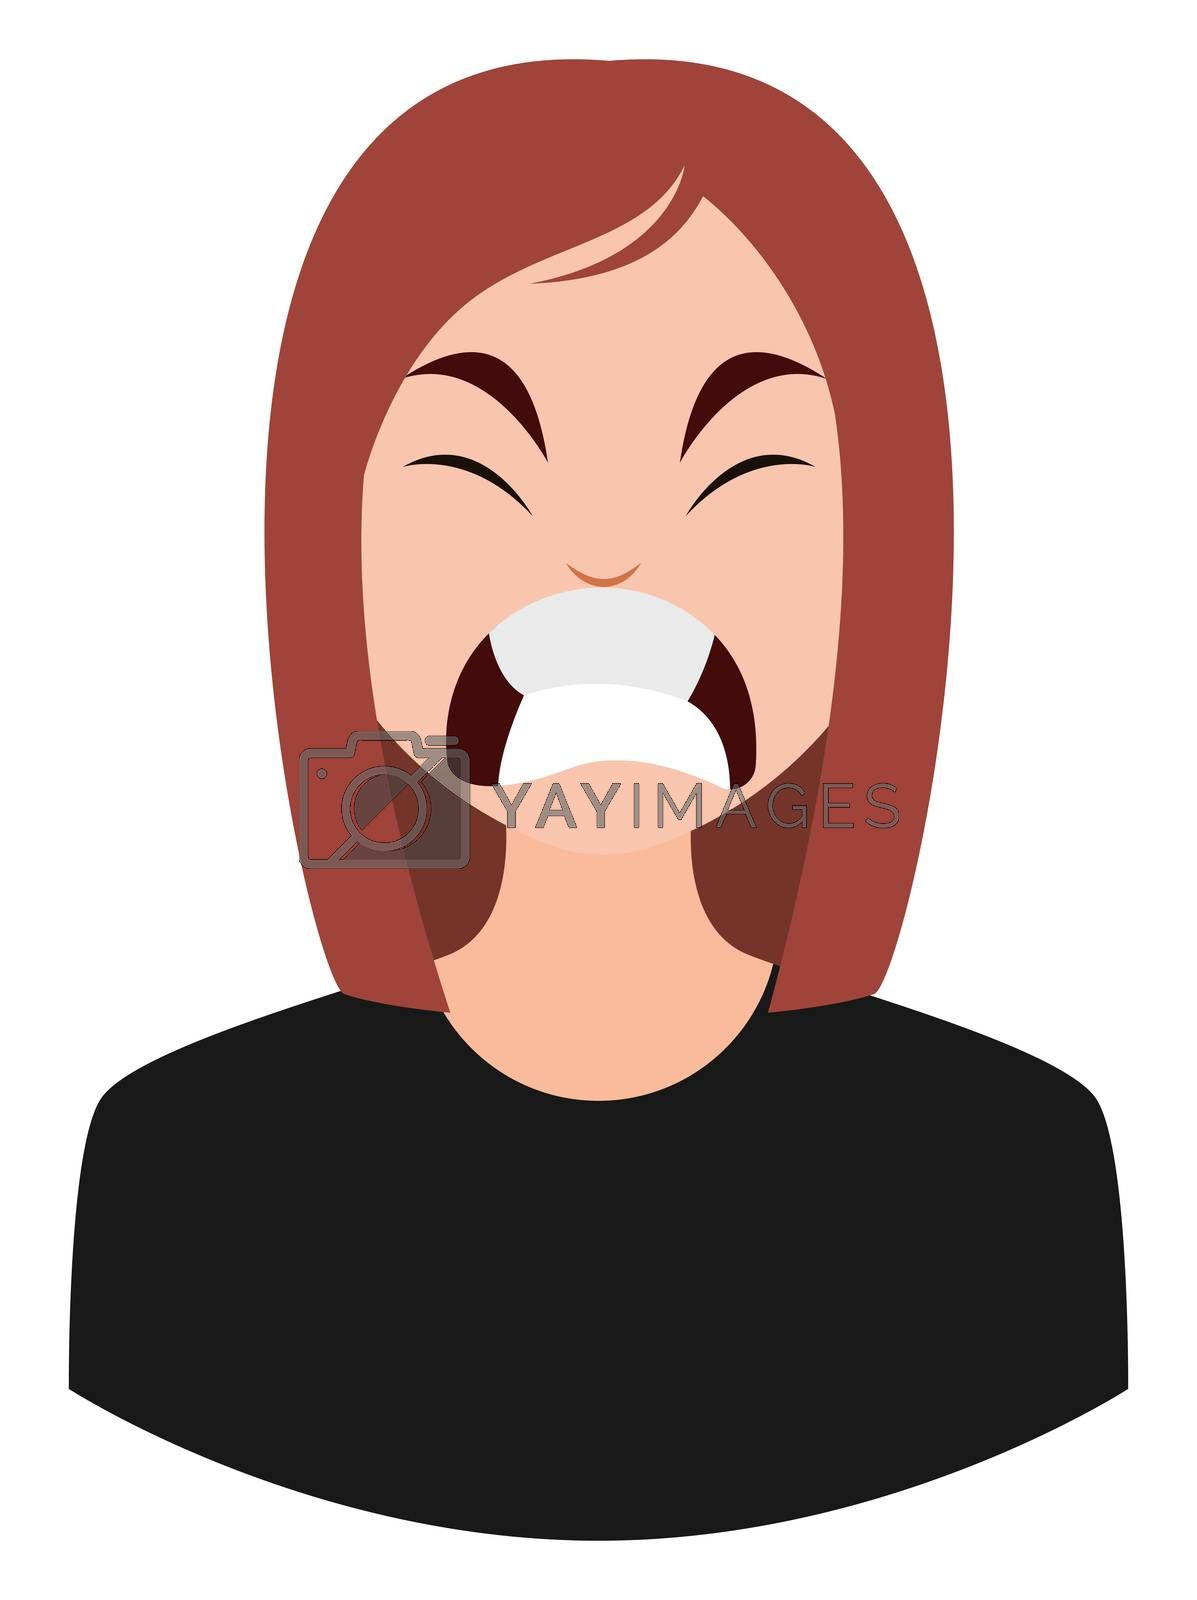 Royalty free image of Angry girl, illustration, vector on white background by Morphart